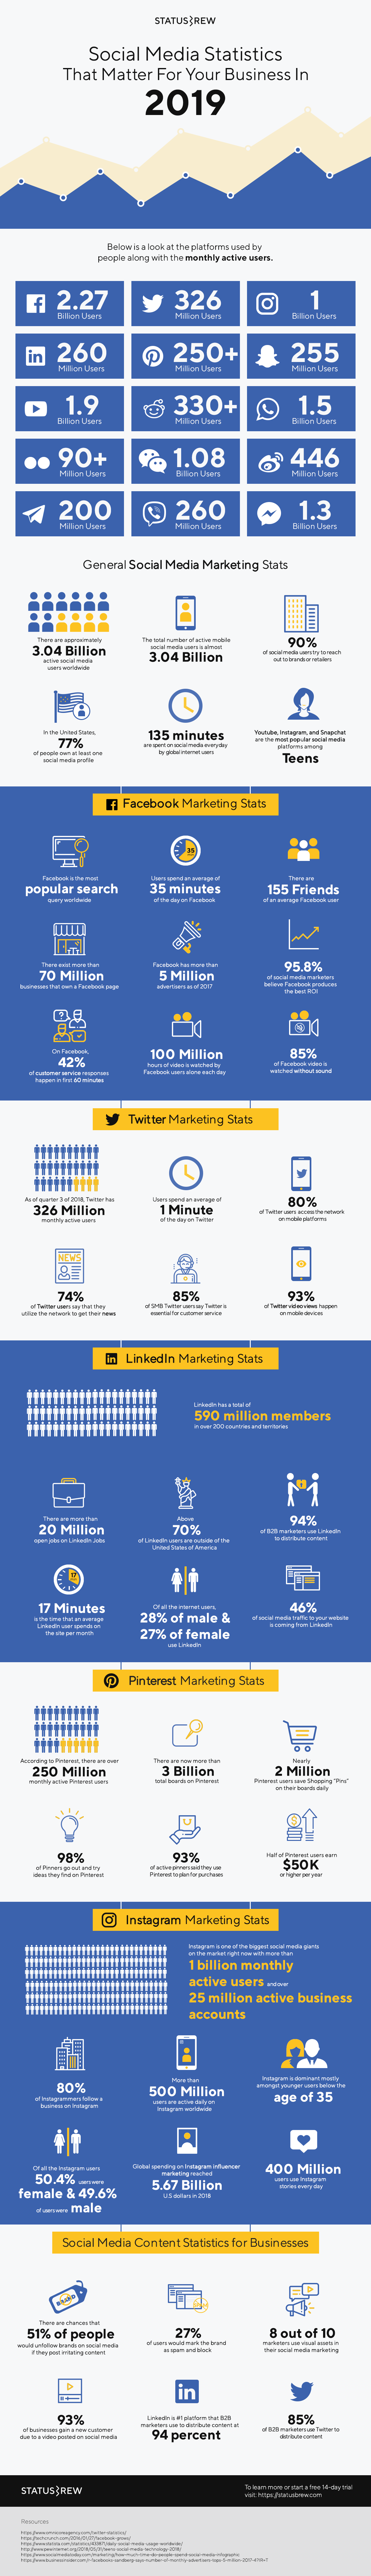 Infographic lists a range of social media usage stats